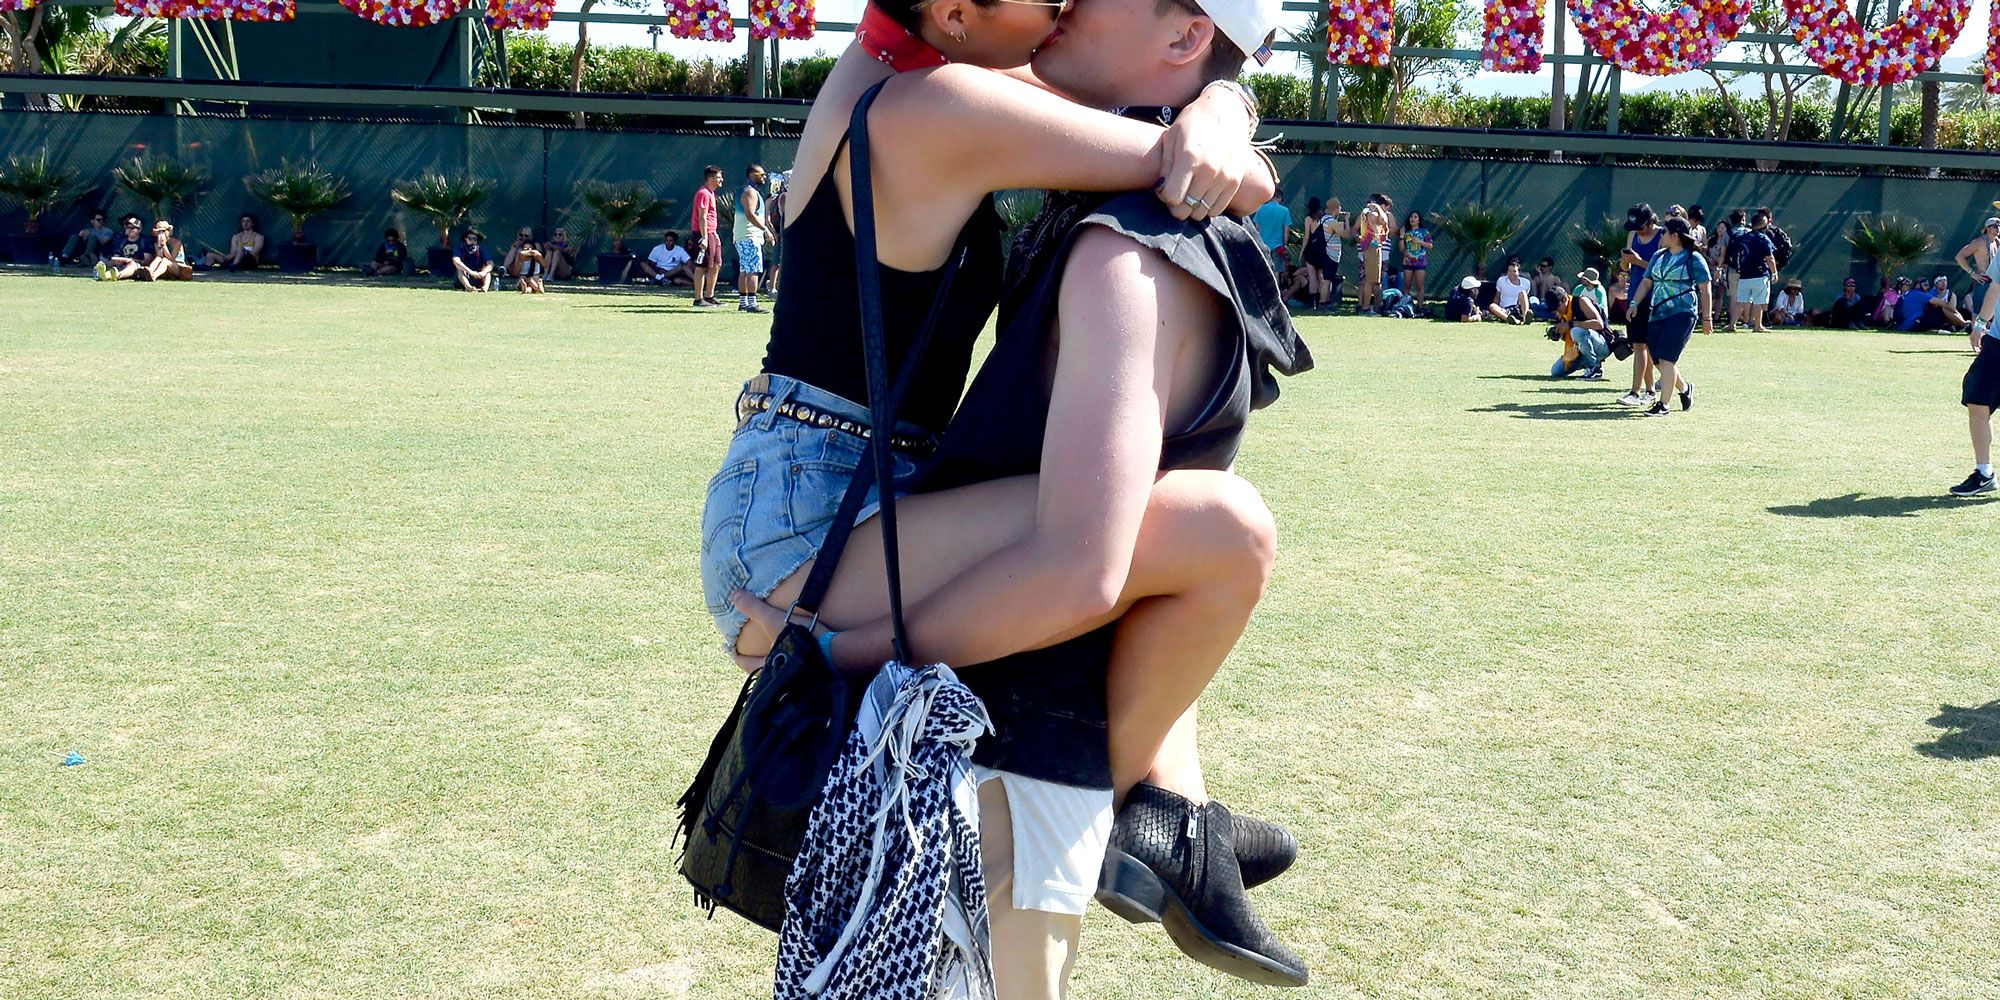 Is it easy to hook up at coachella